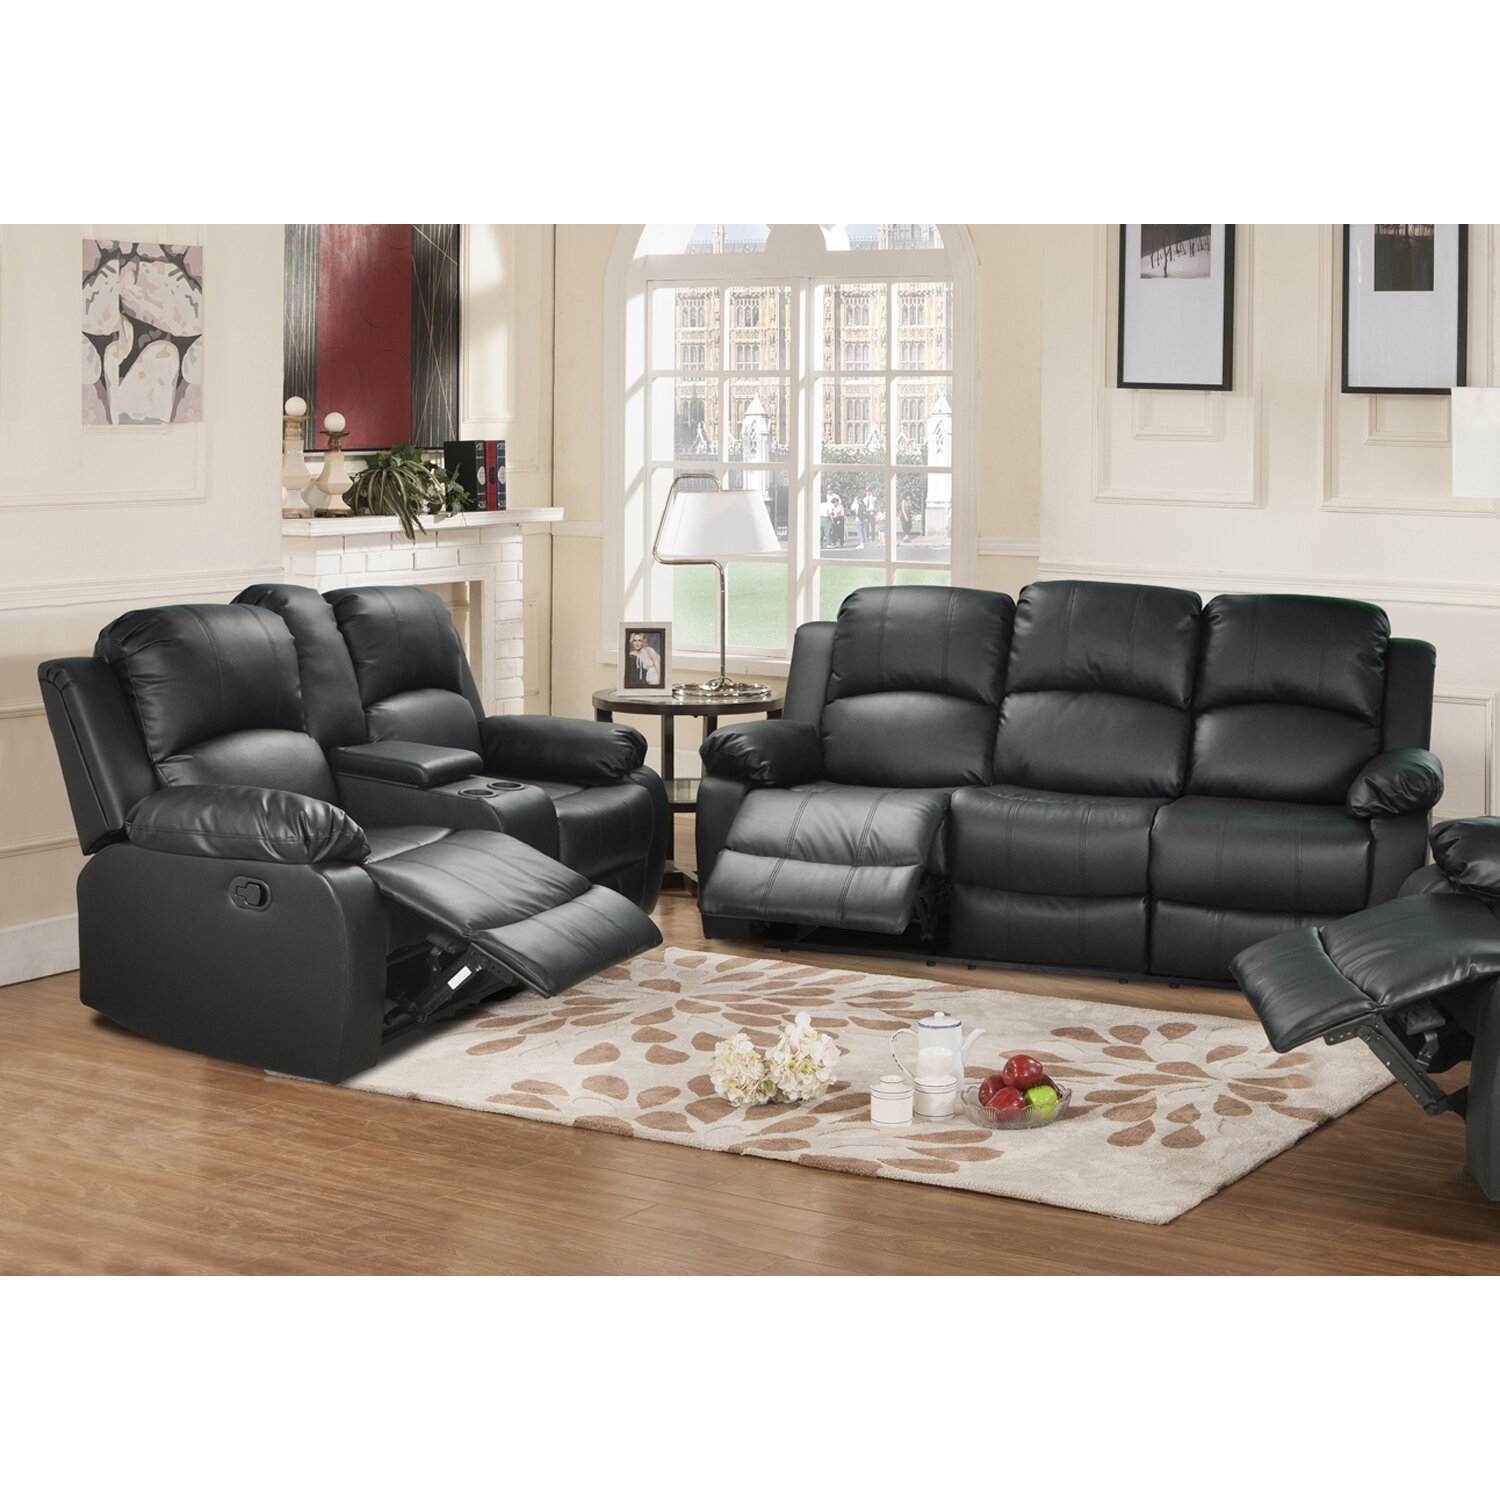 Beverly Fine Furniture Amado 2 Piece Leather Reclining Living Room Set Reviews